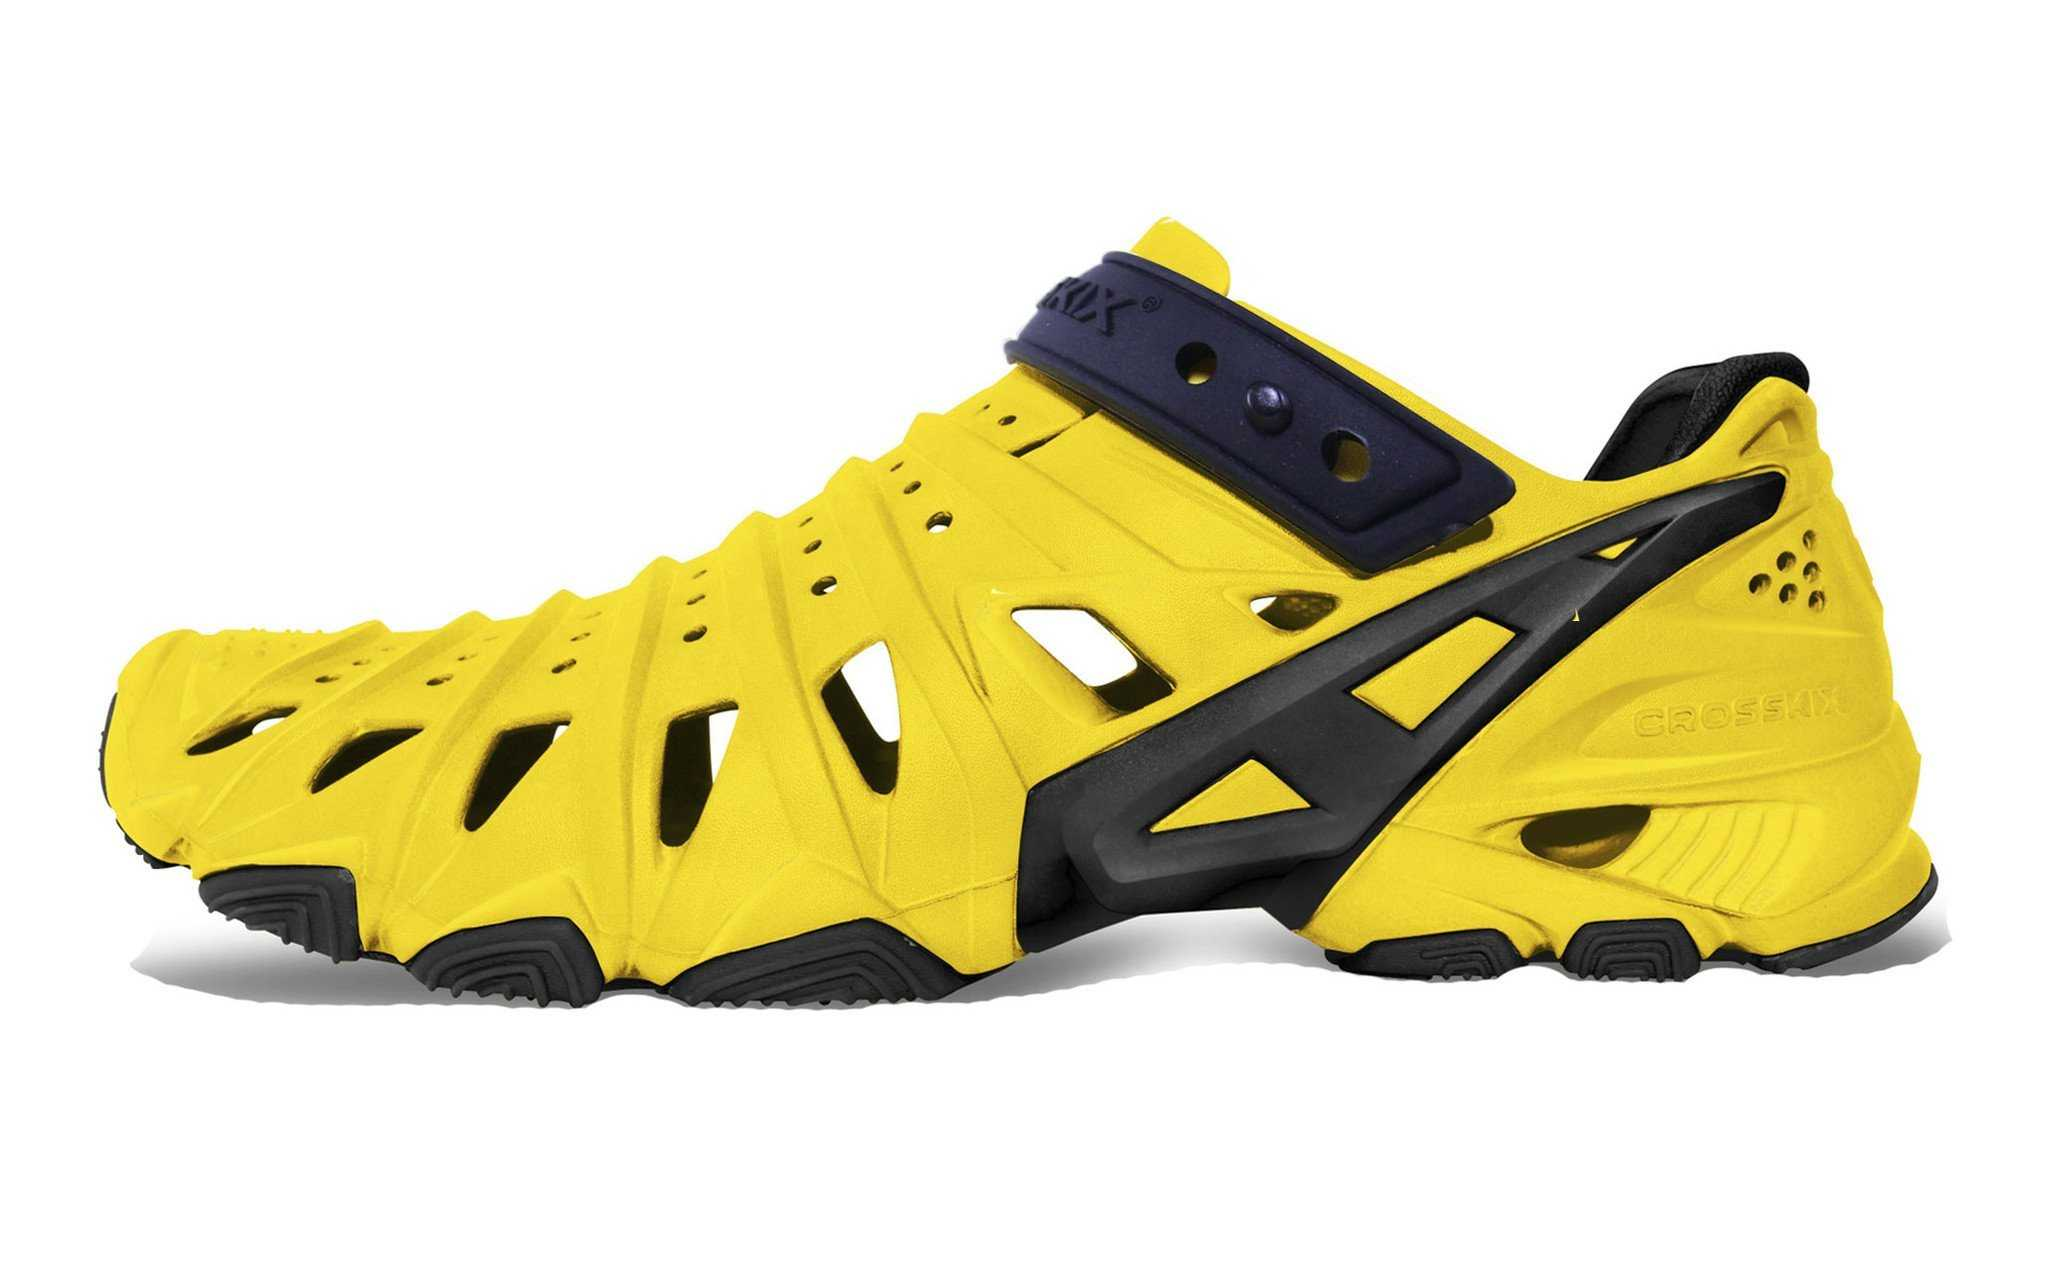 CrossKix 2.0 Athletic Water Shoes